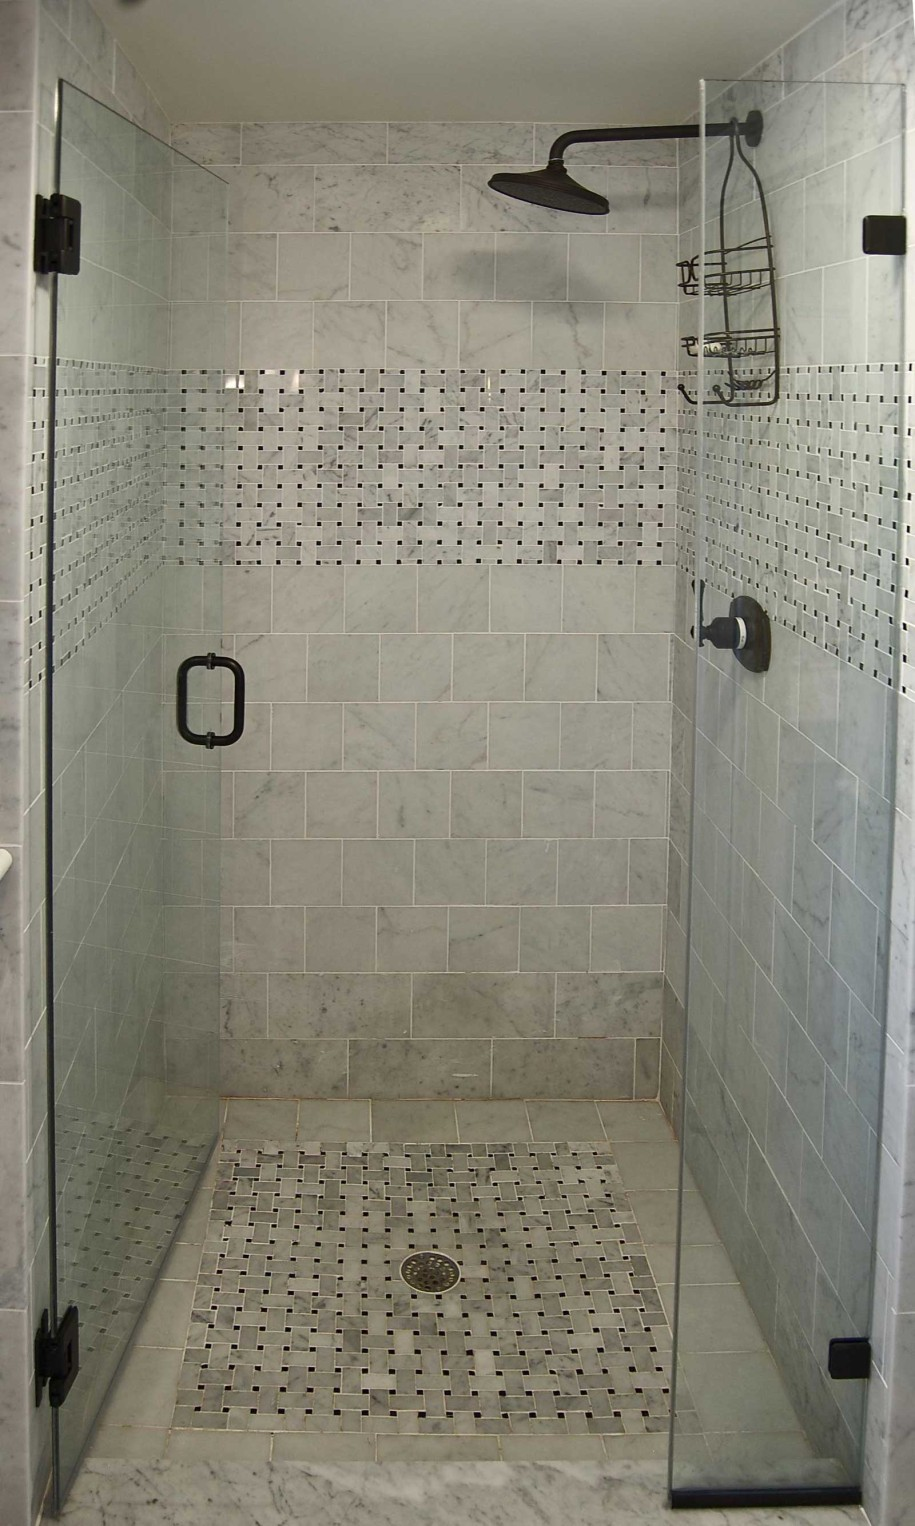 shower design ideas small bathroom - Shower Design Ideas Small Bathroom